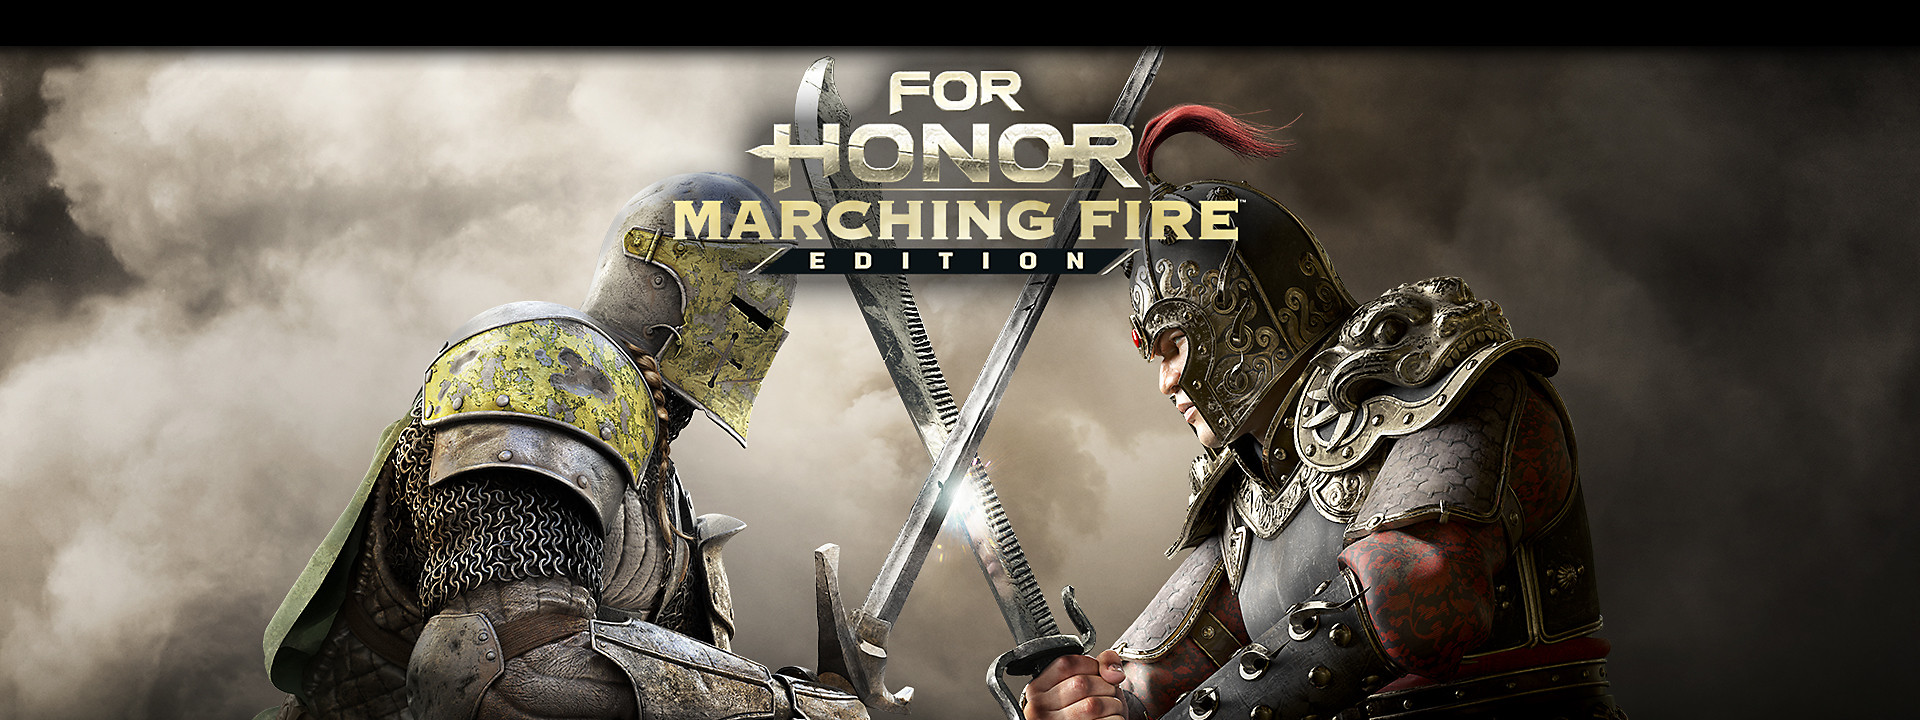 For Honor Marching Fire Edition Game Banner